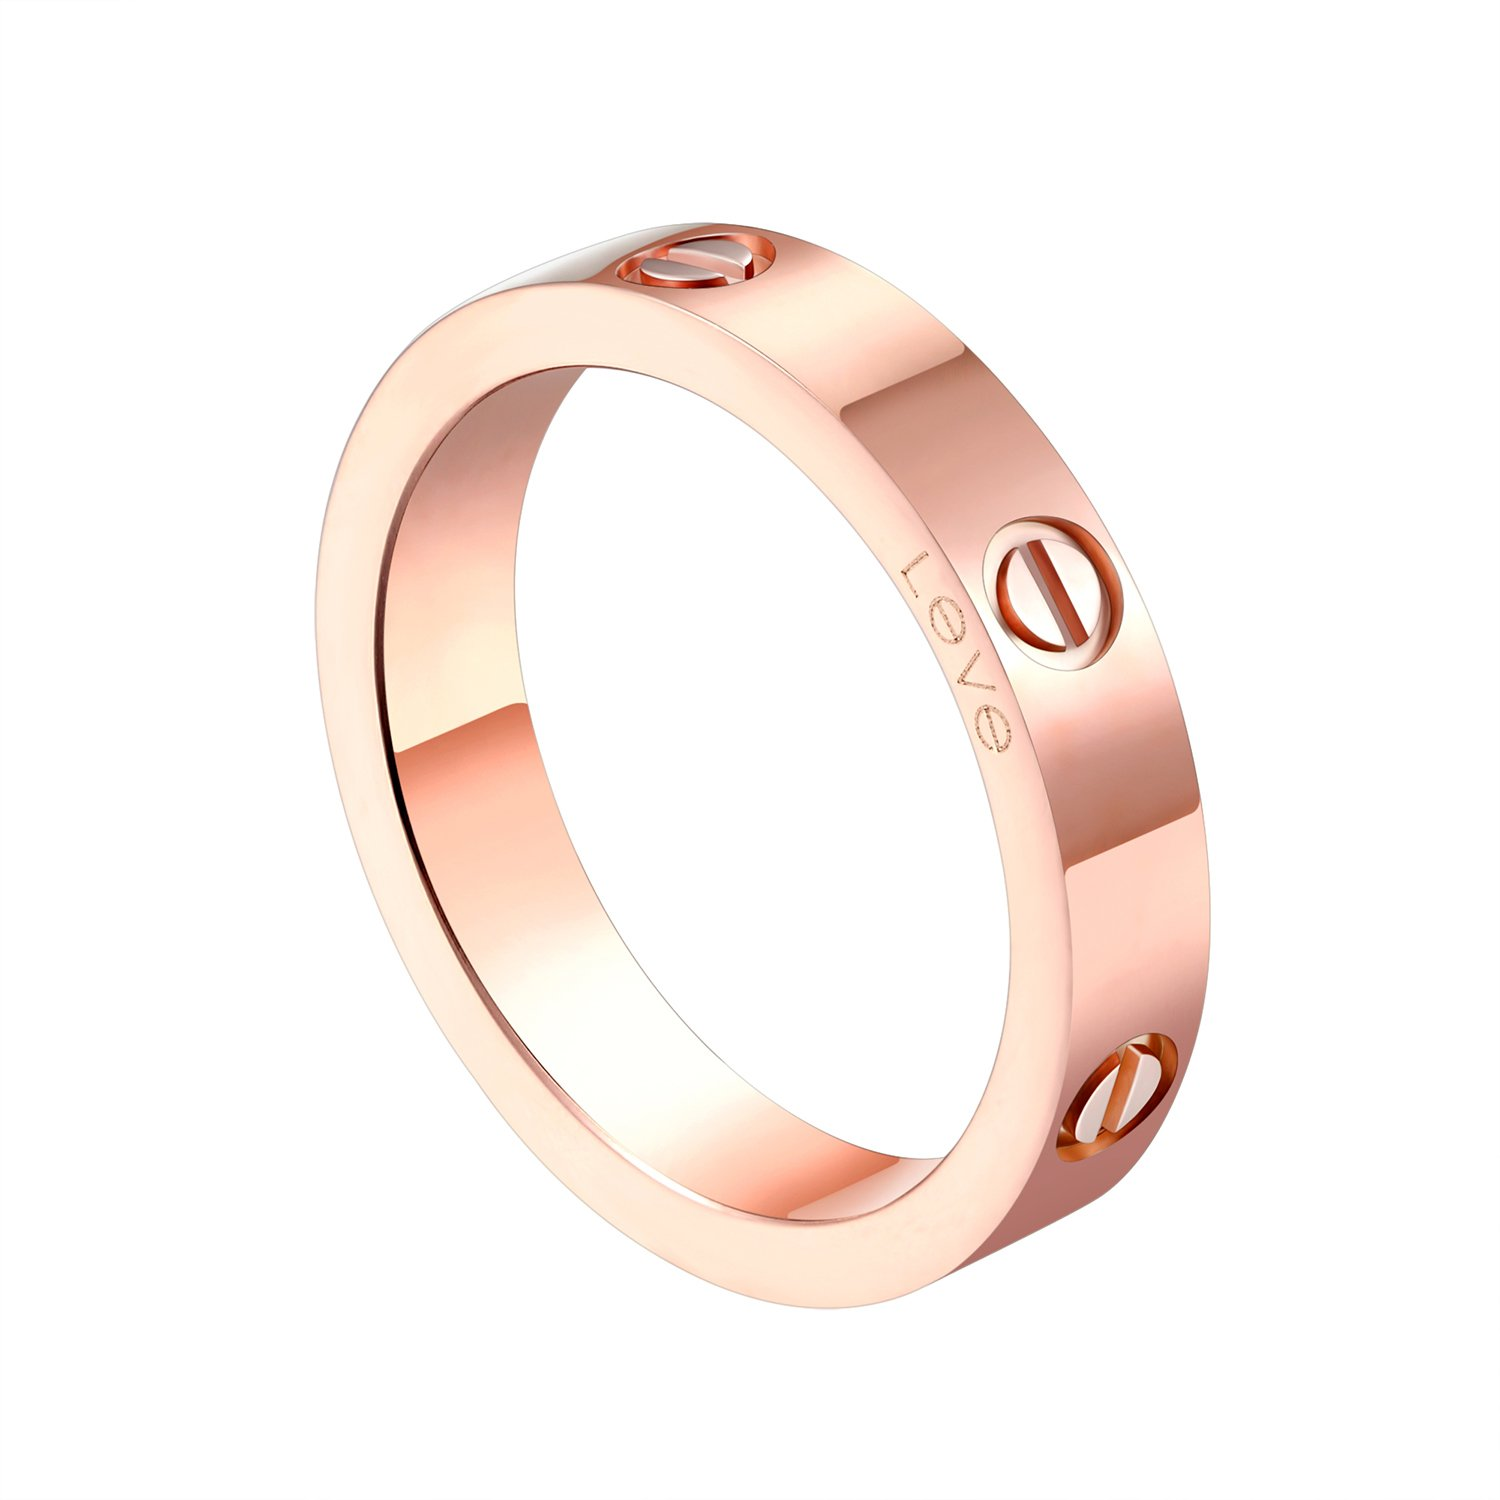 Z.RACLE 4mm Love Rings for women with Screw Design Best Gifts for love Rosegold - 6